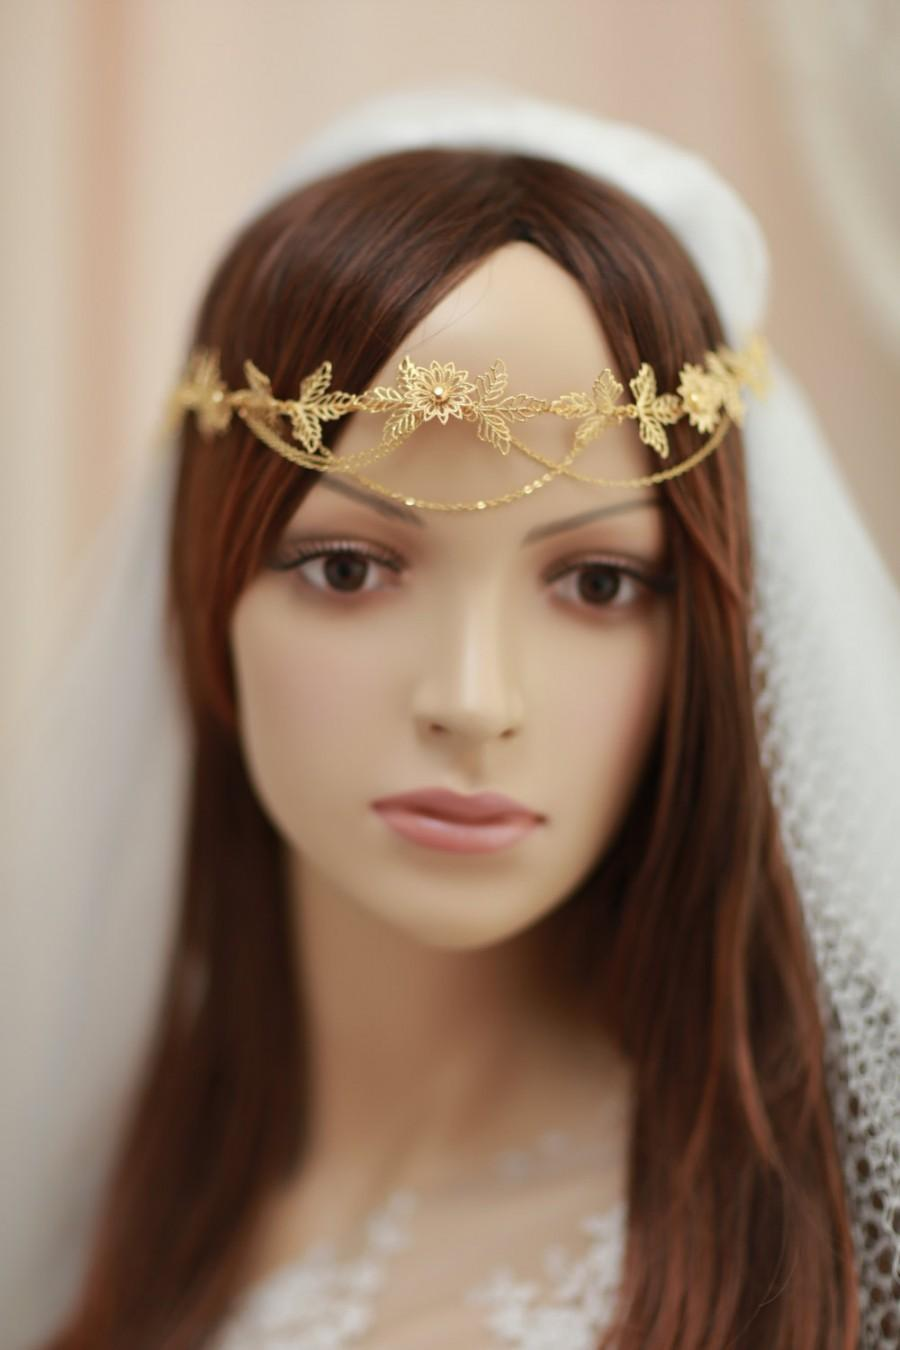 Mariage - Bridal halo, tiara, headband with swags,hand wired gold plated flowers and leaves headband- Golden crown with swags---v710